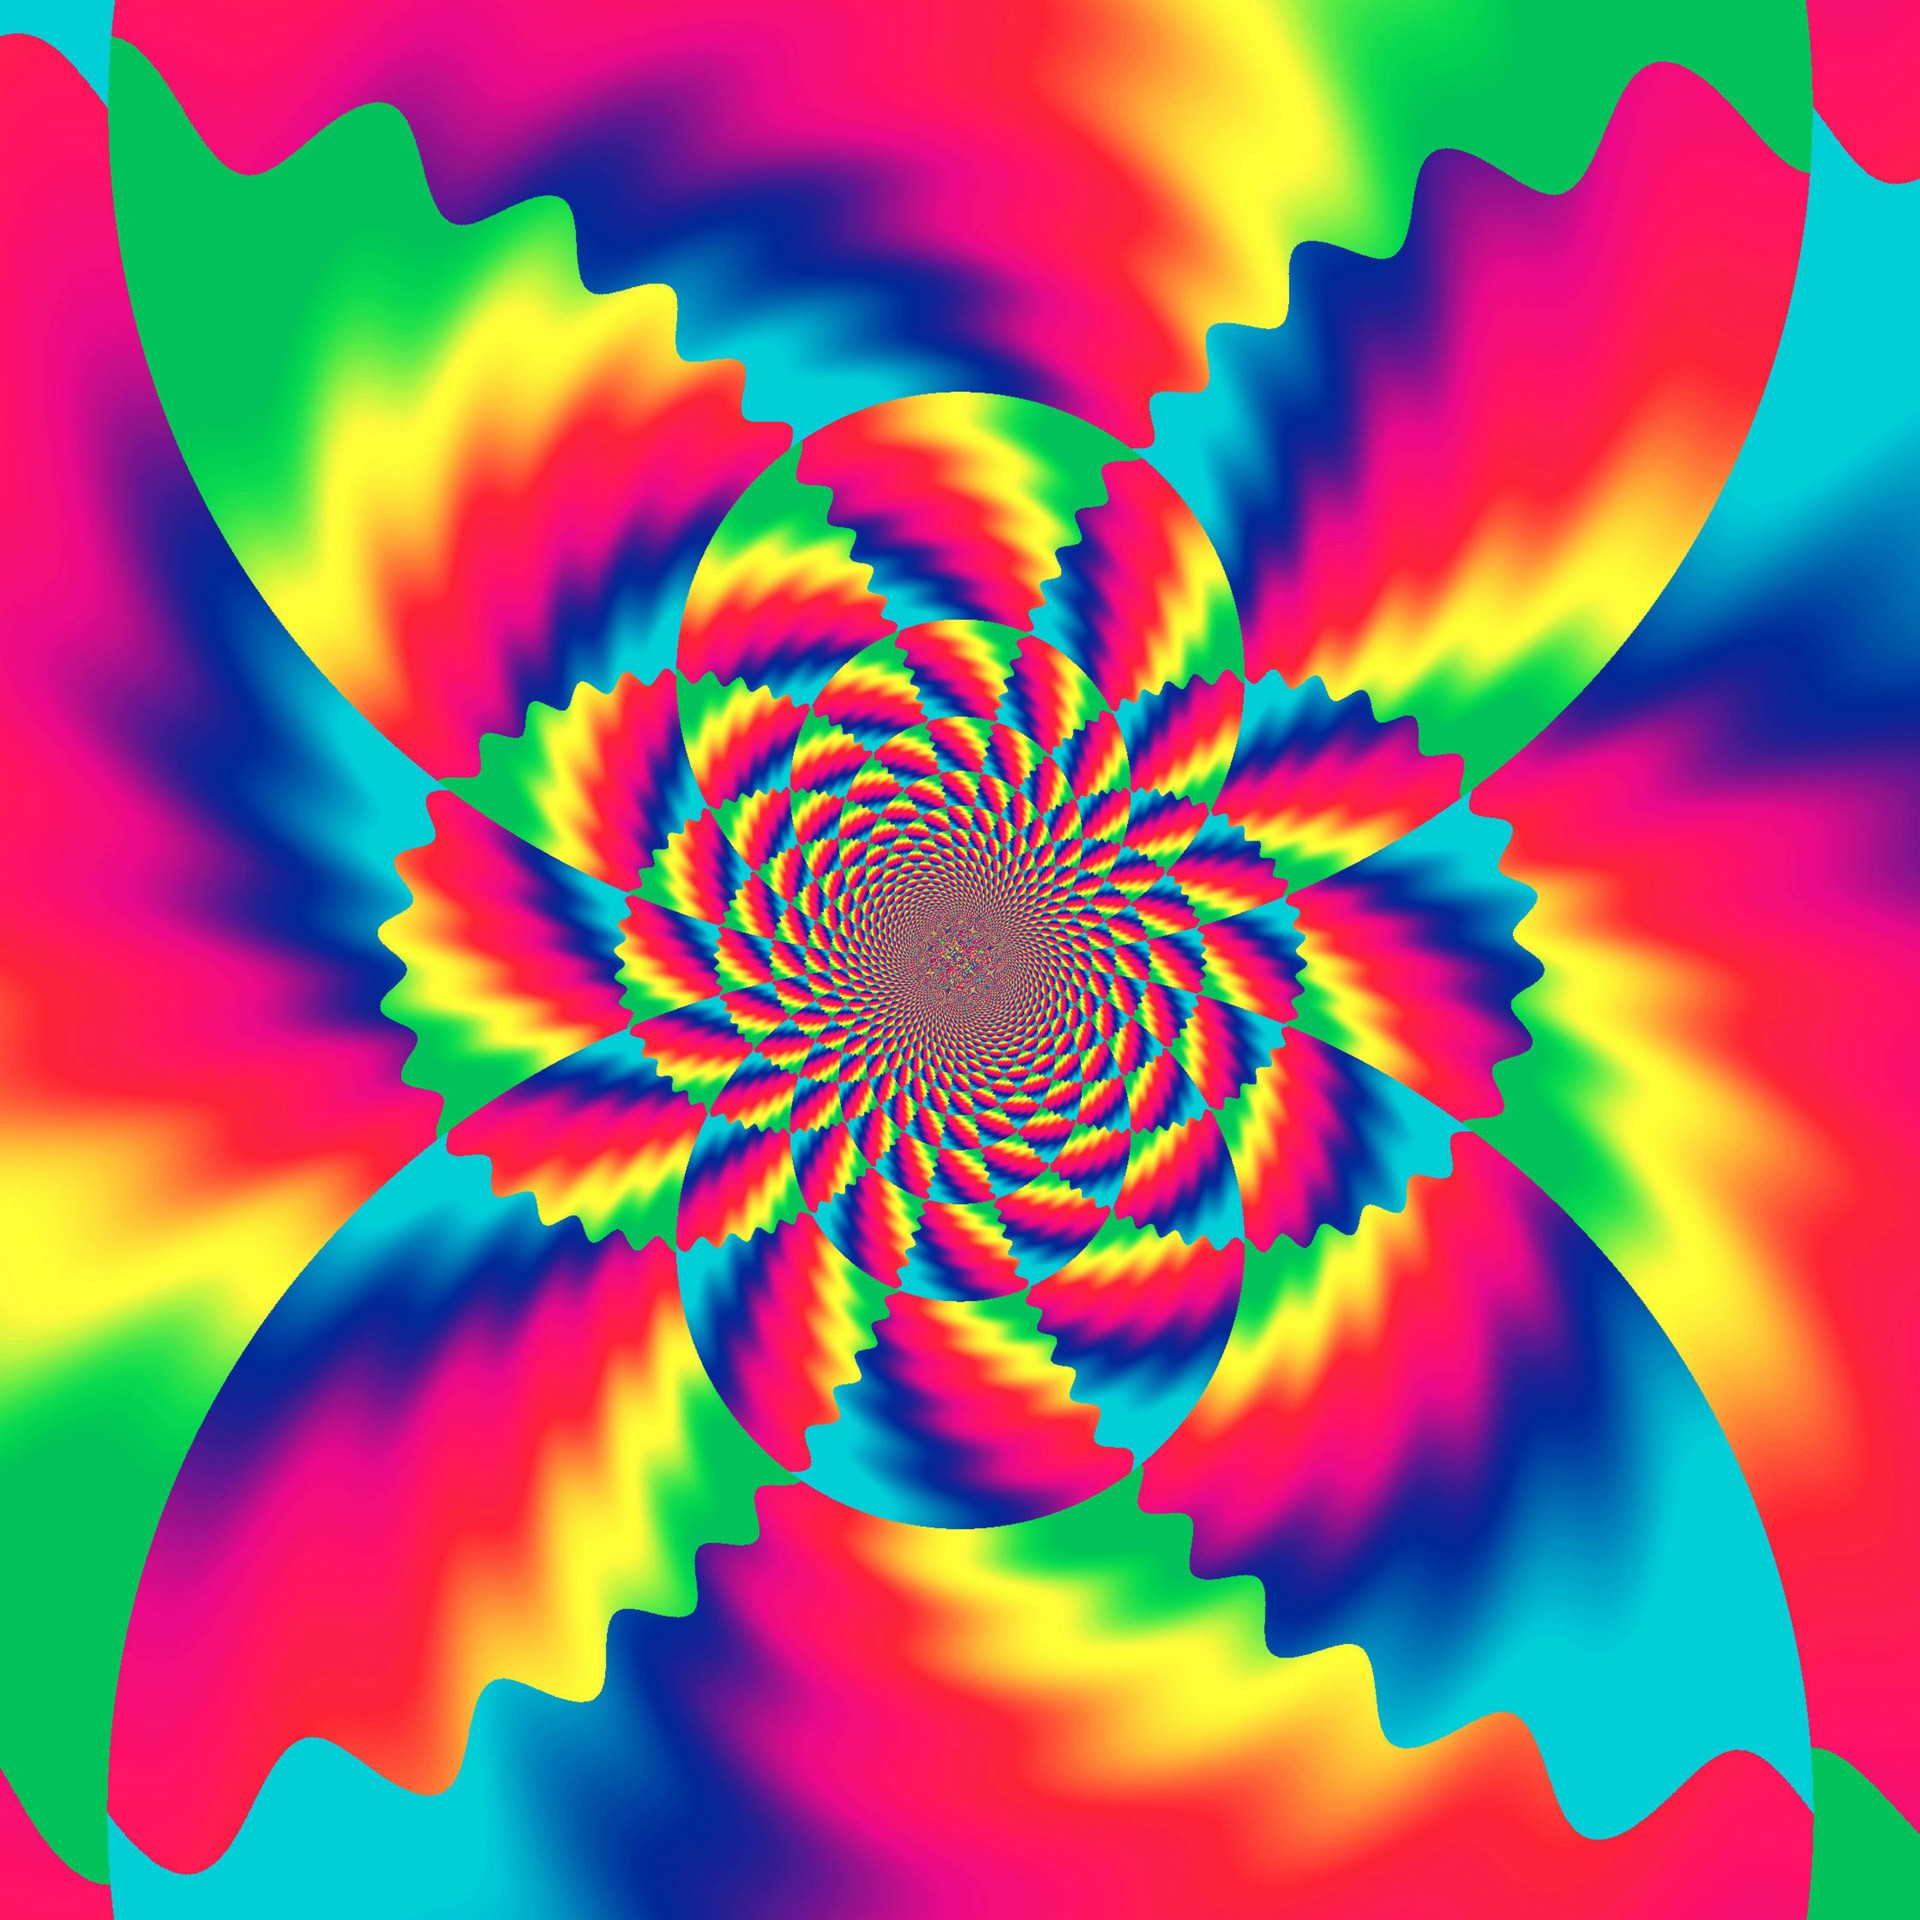 Psychedelic background  Download free stunning full HD